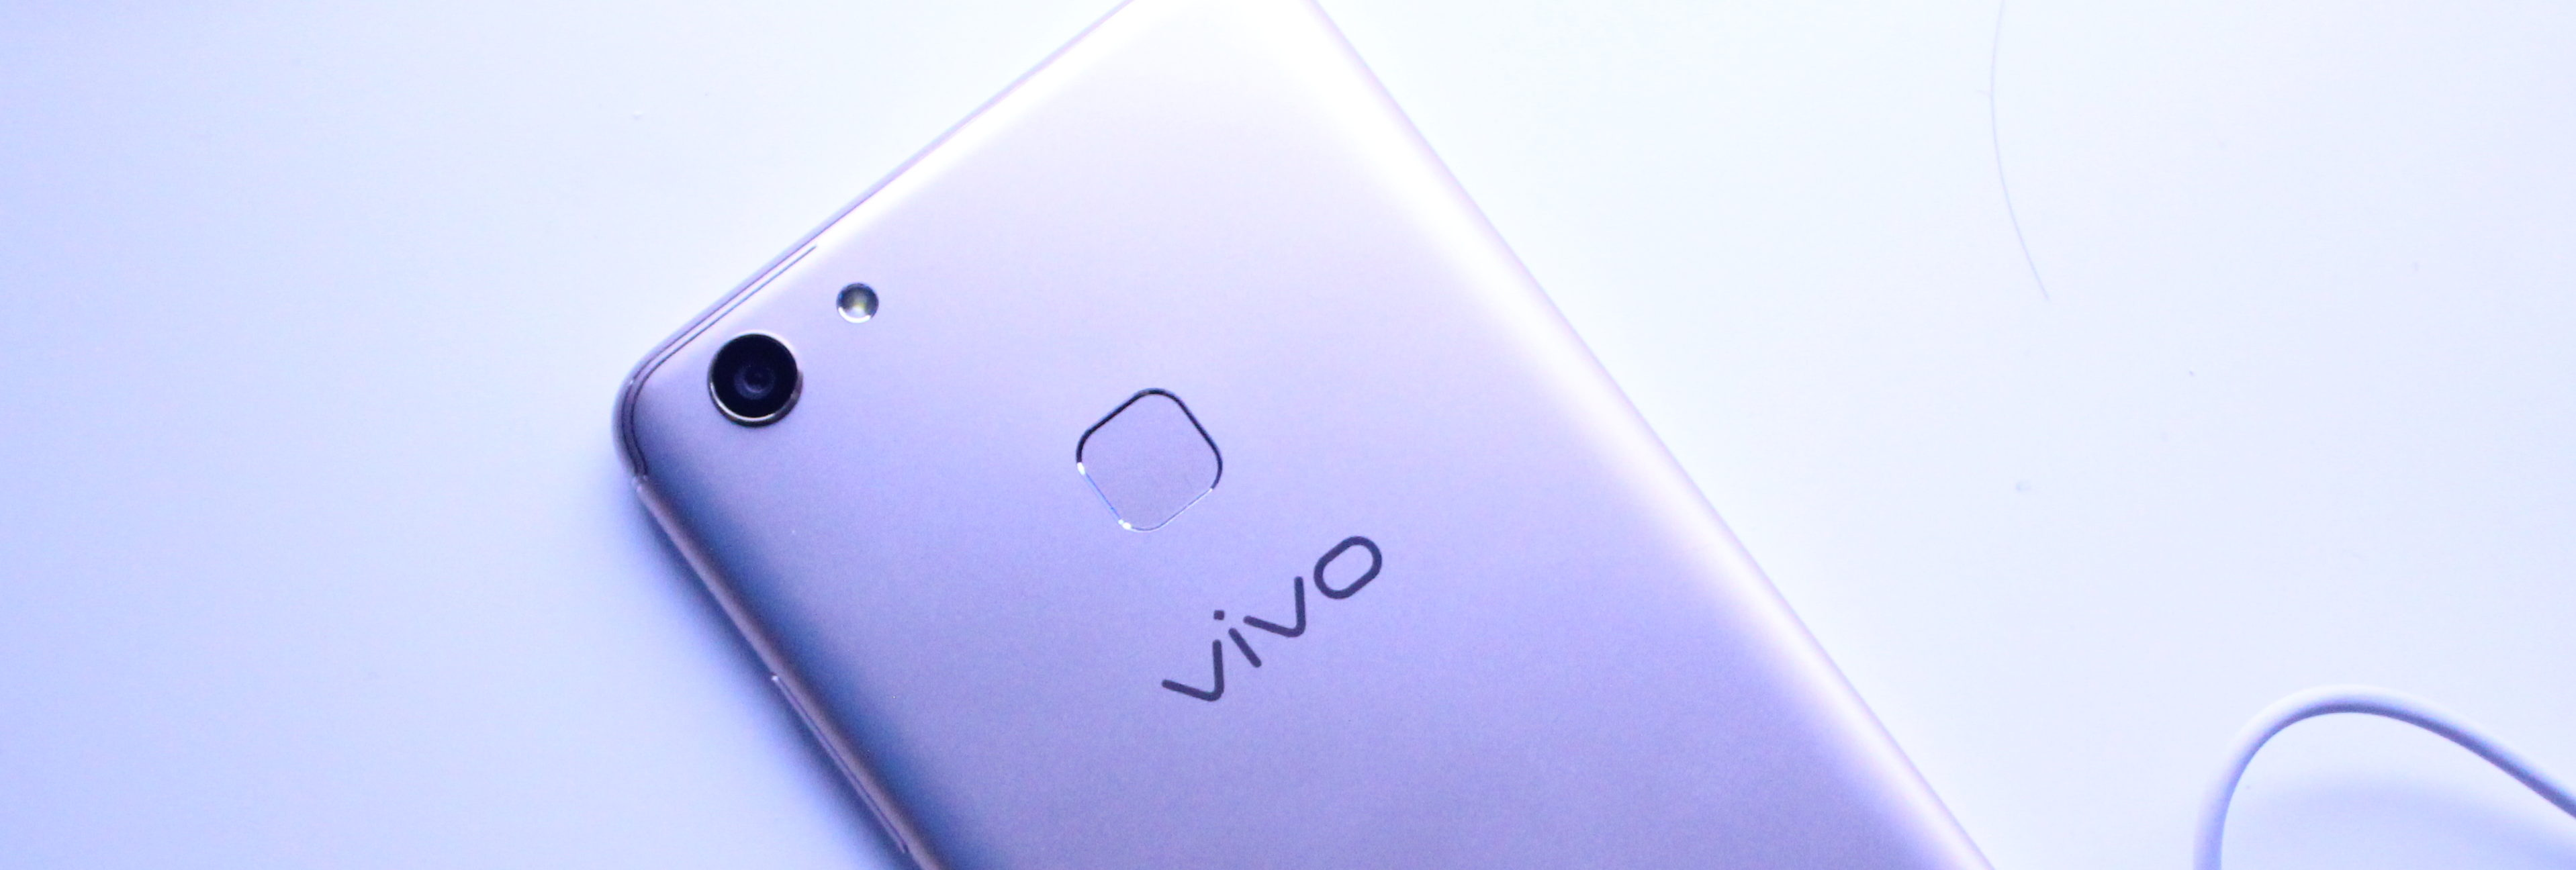 vivo-ph-introduces-their-newest-all-screen-and-selfie-centric-smartphone-the-v7